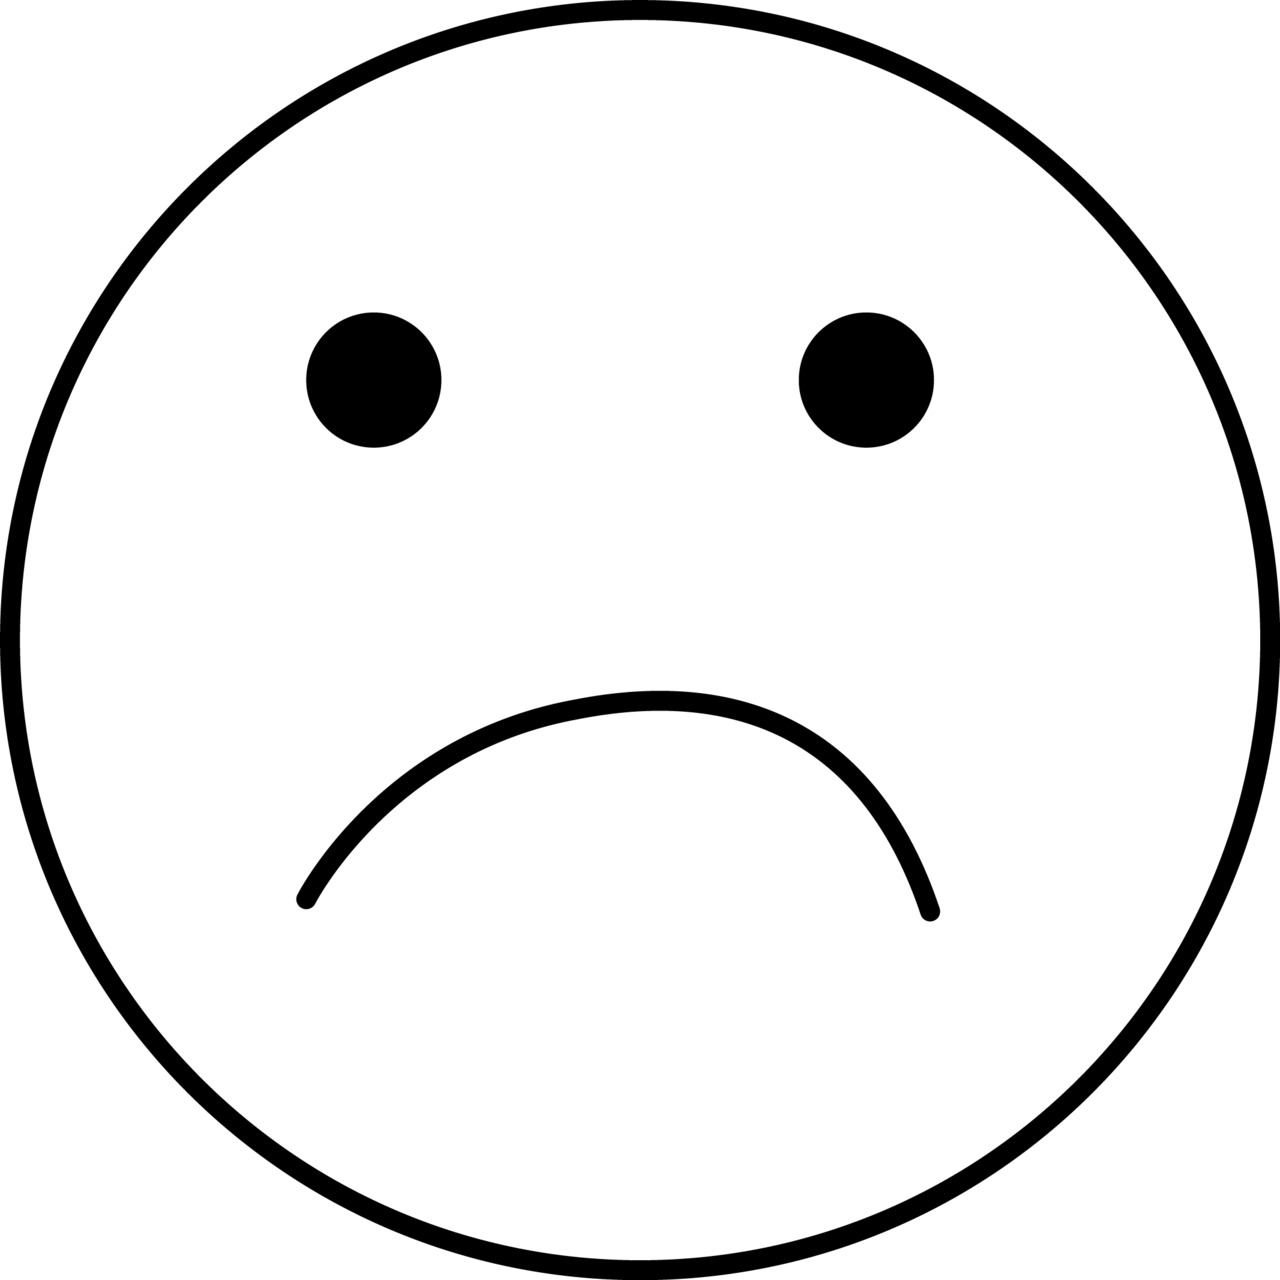 Sad face clipart black and white download Free Sad Face, Download Free Clip Art, Free Clip Art on ... download